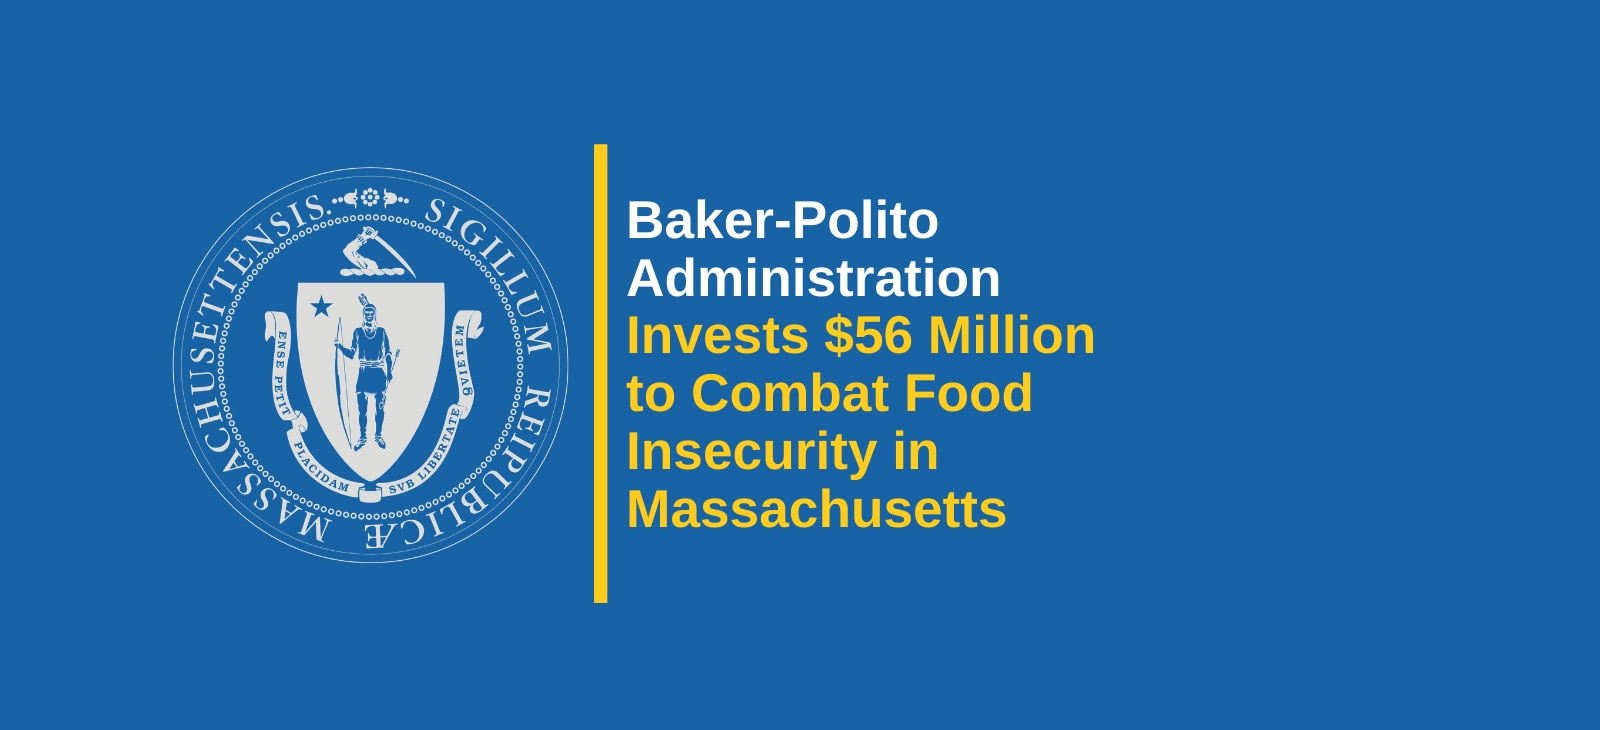 Baker-Polito Administration Invests $56 Million to Combat Food Insecurity in Massachusetts